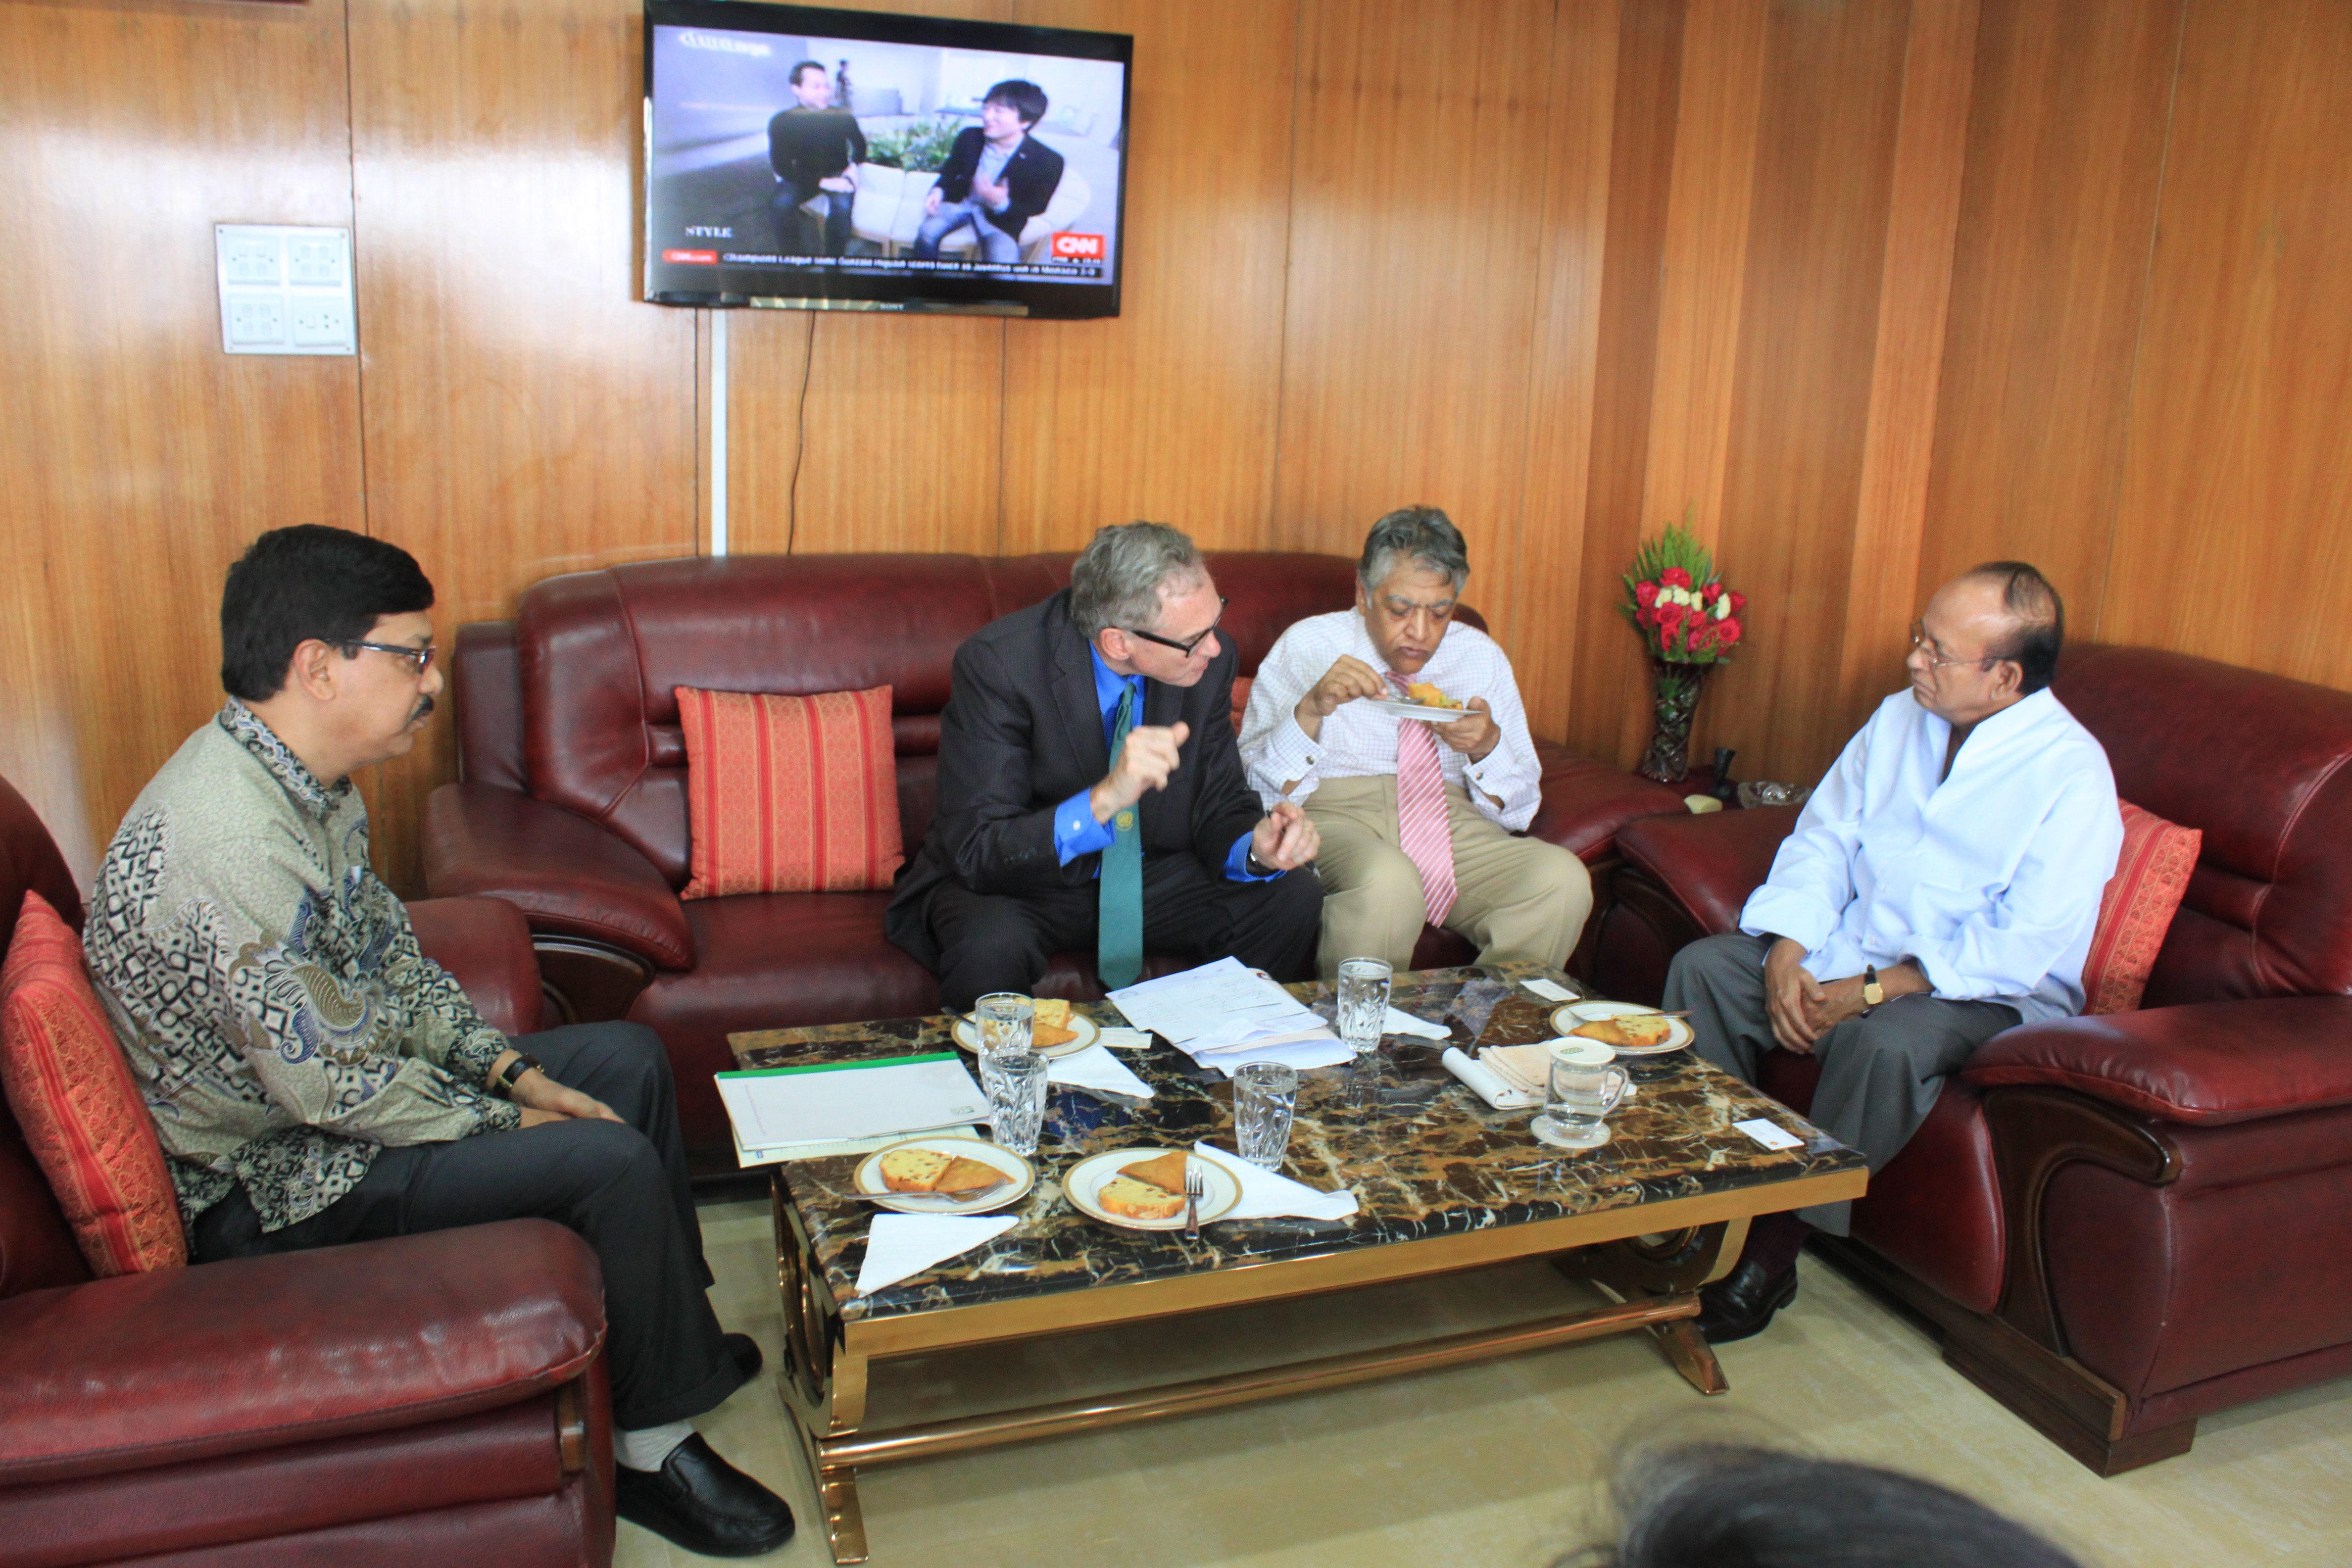 Charles G. Brown along with ESDO team visited  Honorable Minister, Mr. Anwar Hossain Manju, MP, Ministry of Environment and Forests (MoEF)